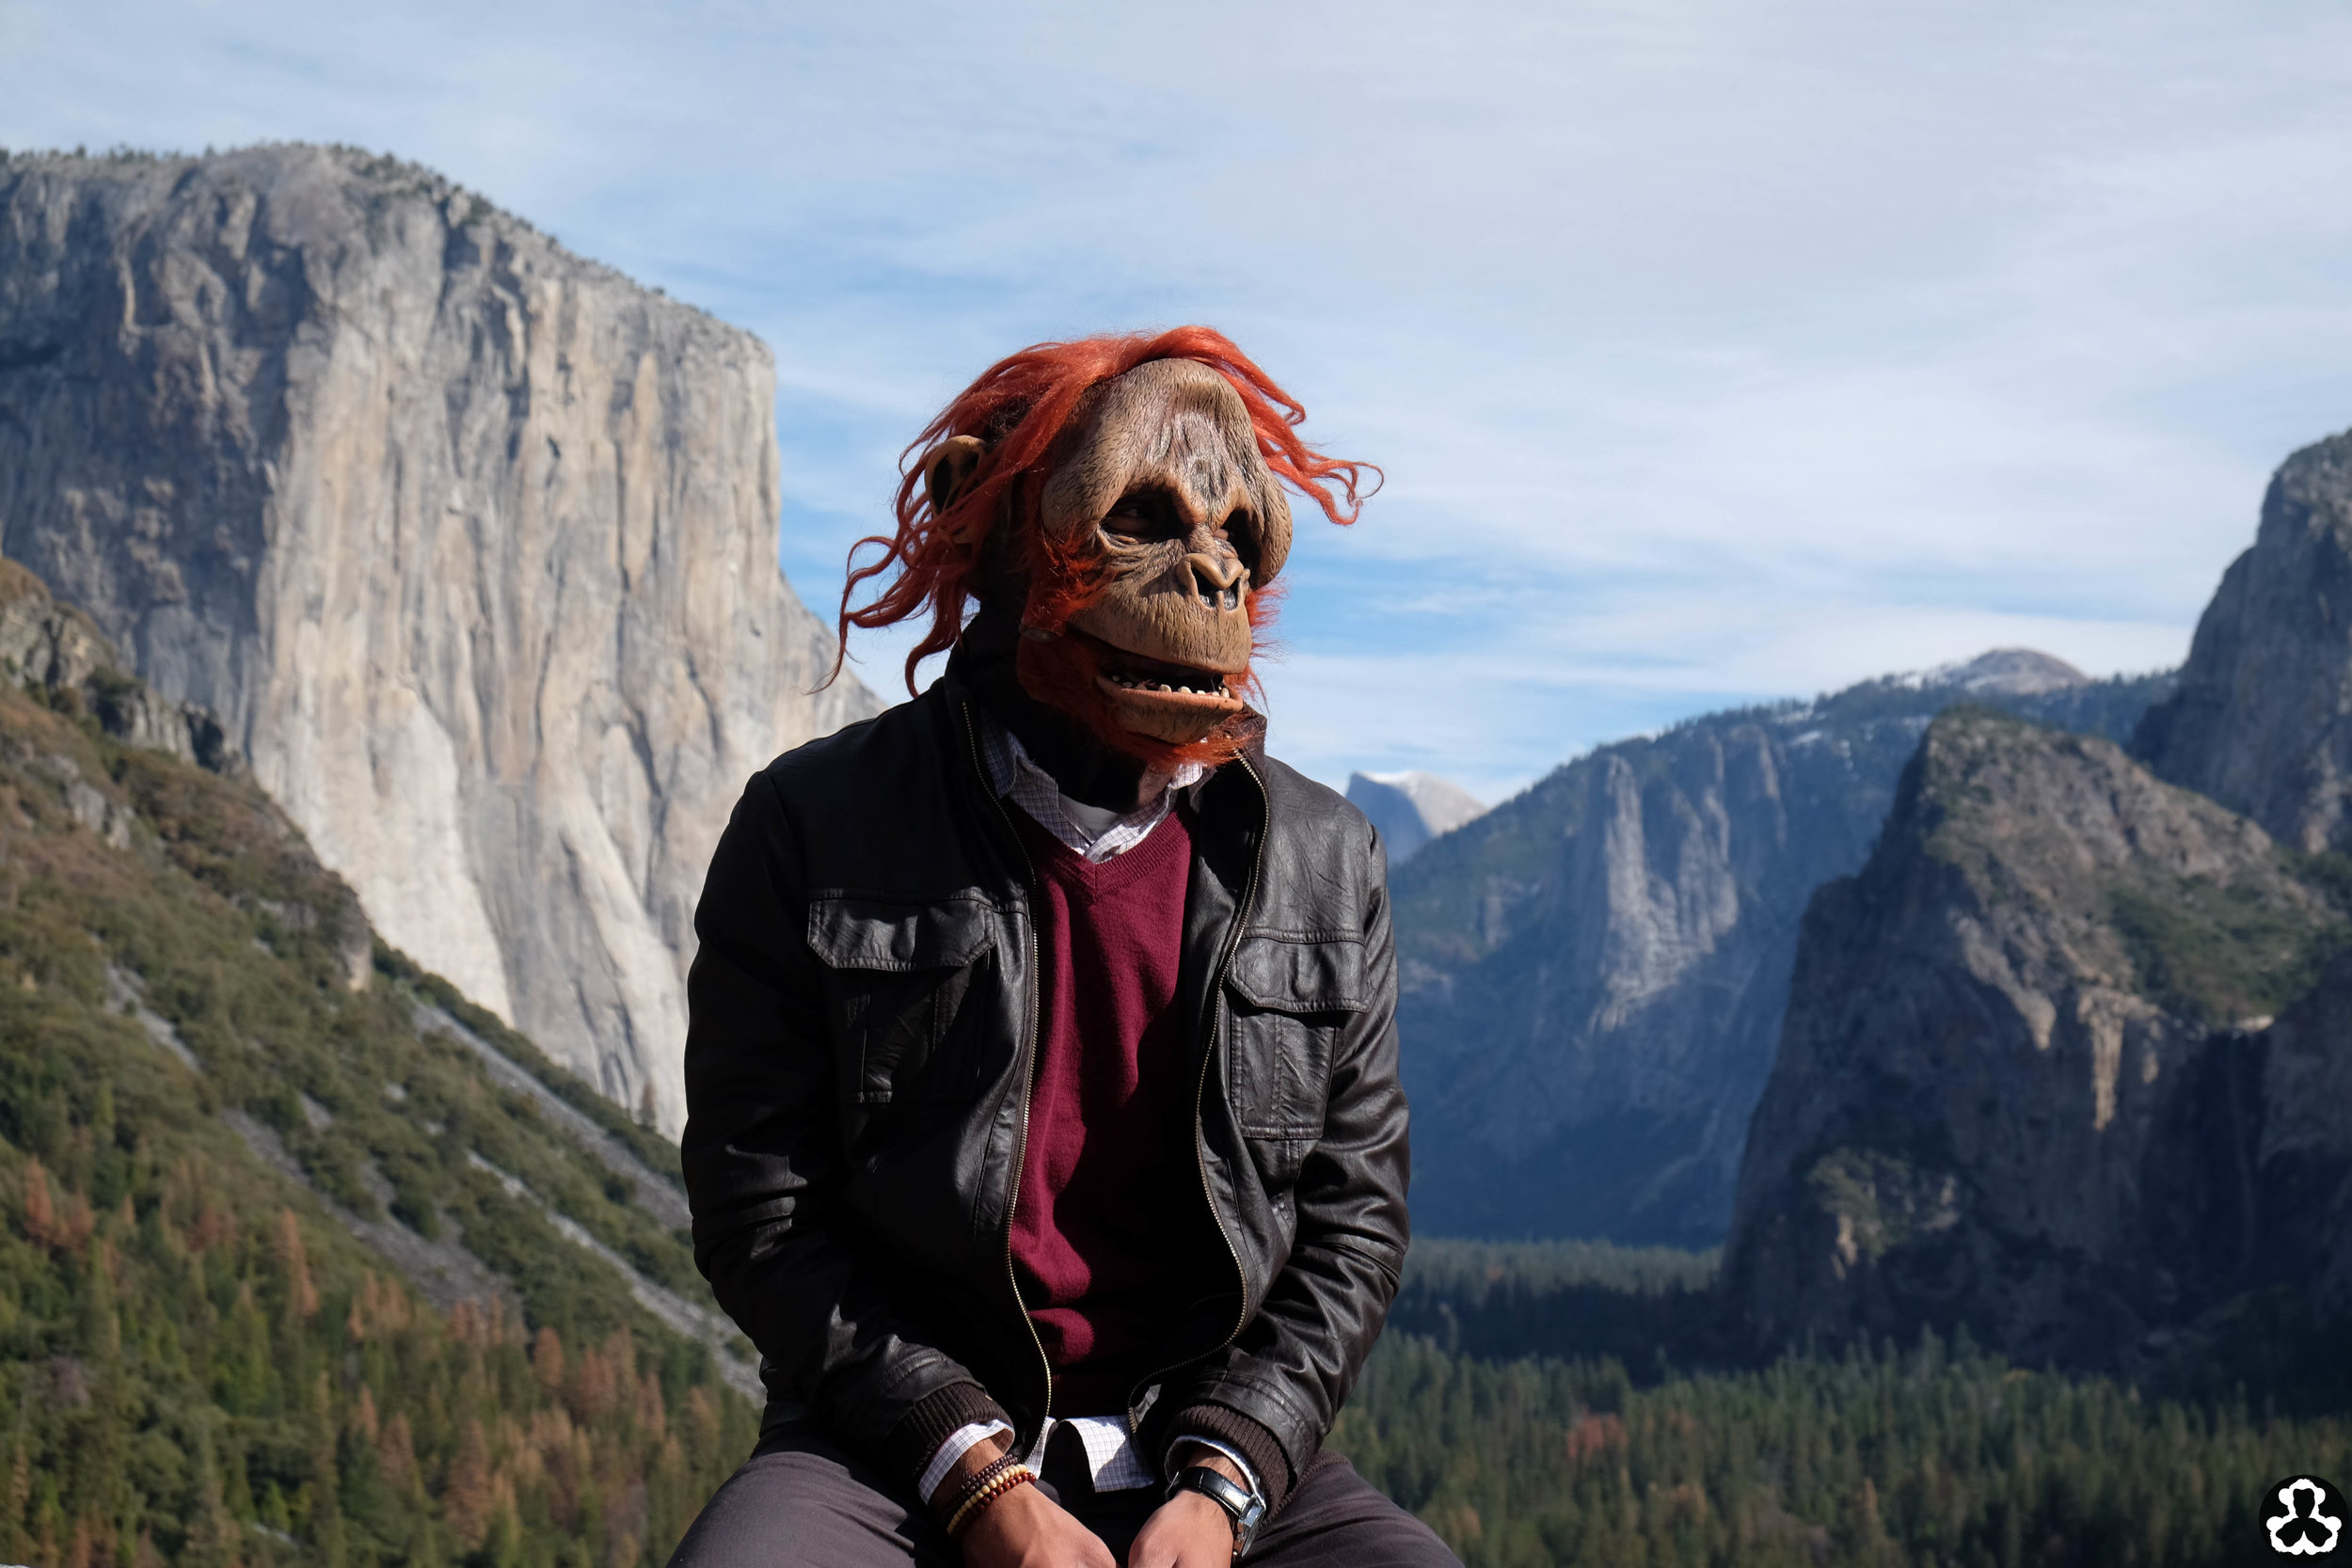 ape-is-dapper-apprentice-yosemite-outfits-15